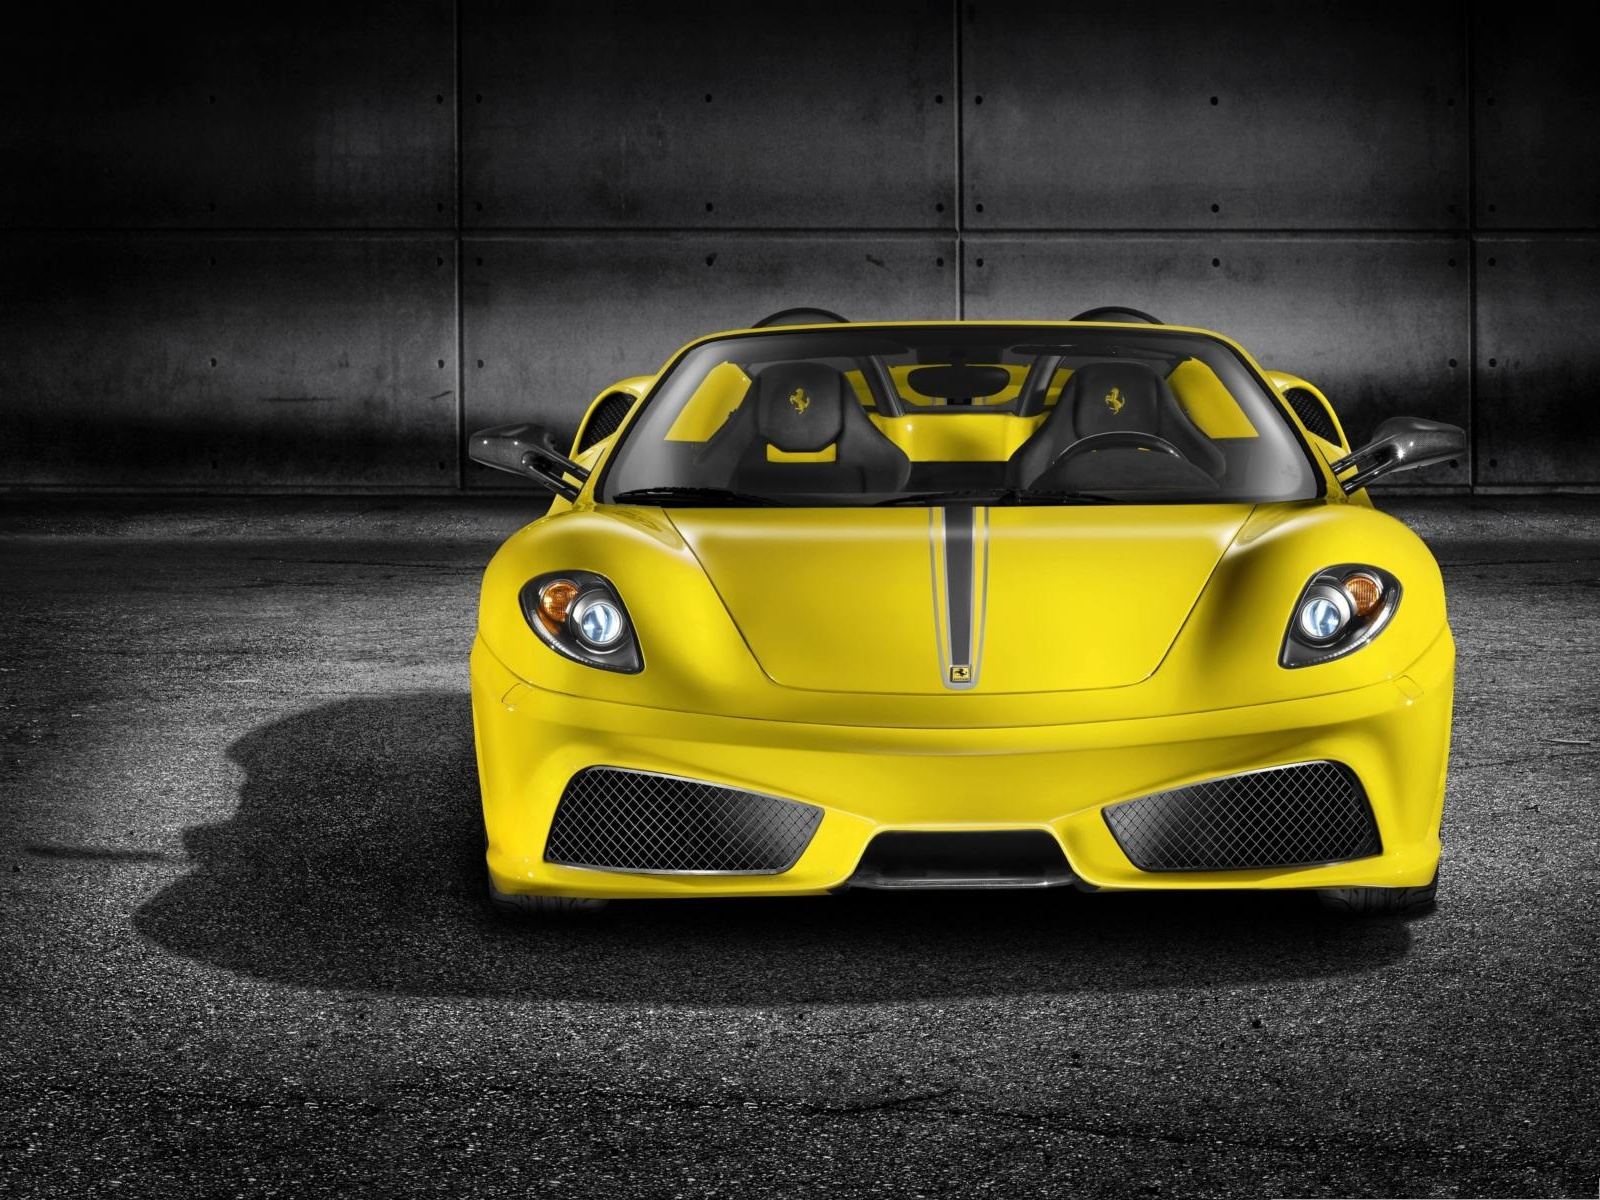 click to free download the wallpaper--Ferrari Cars Background, Yellow Car in the Stop, Great Shadow Beneath 1600X1200 free wallpaper download